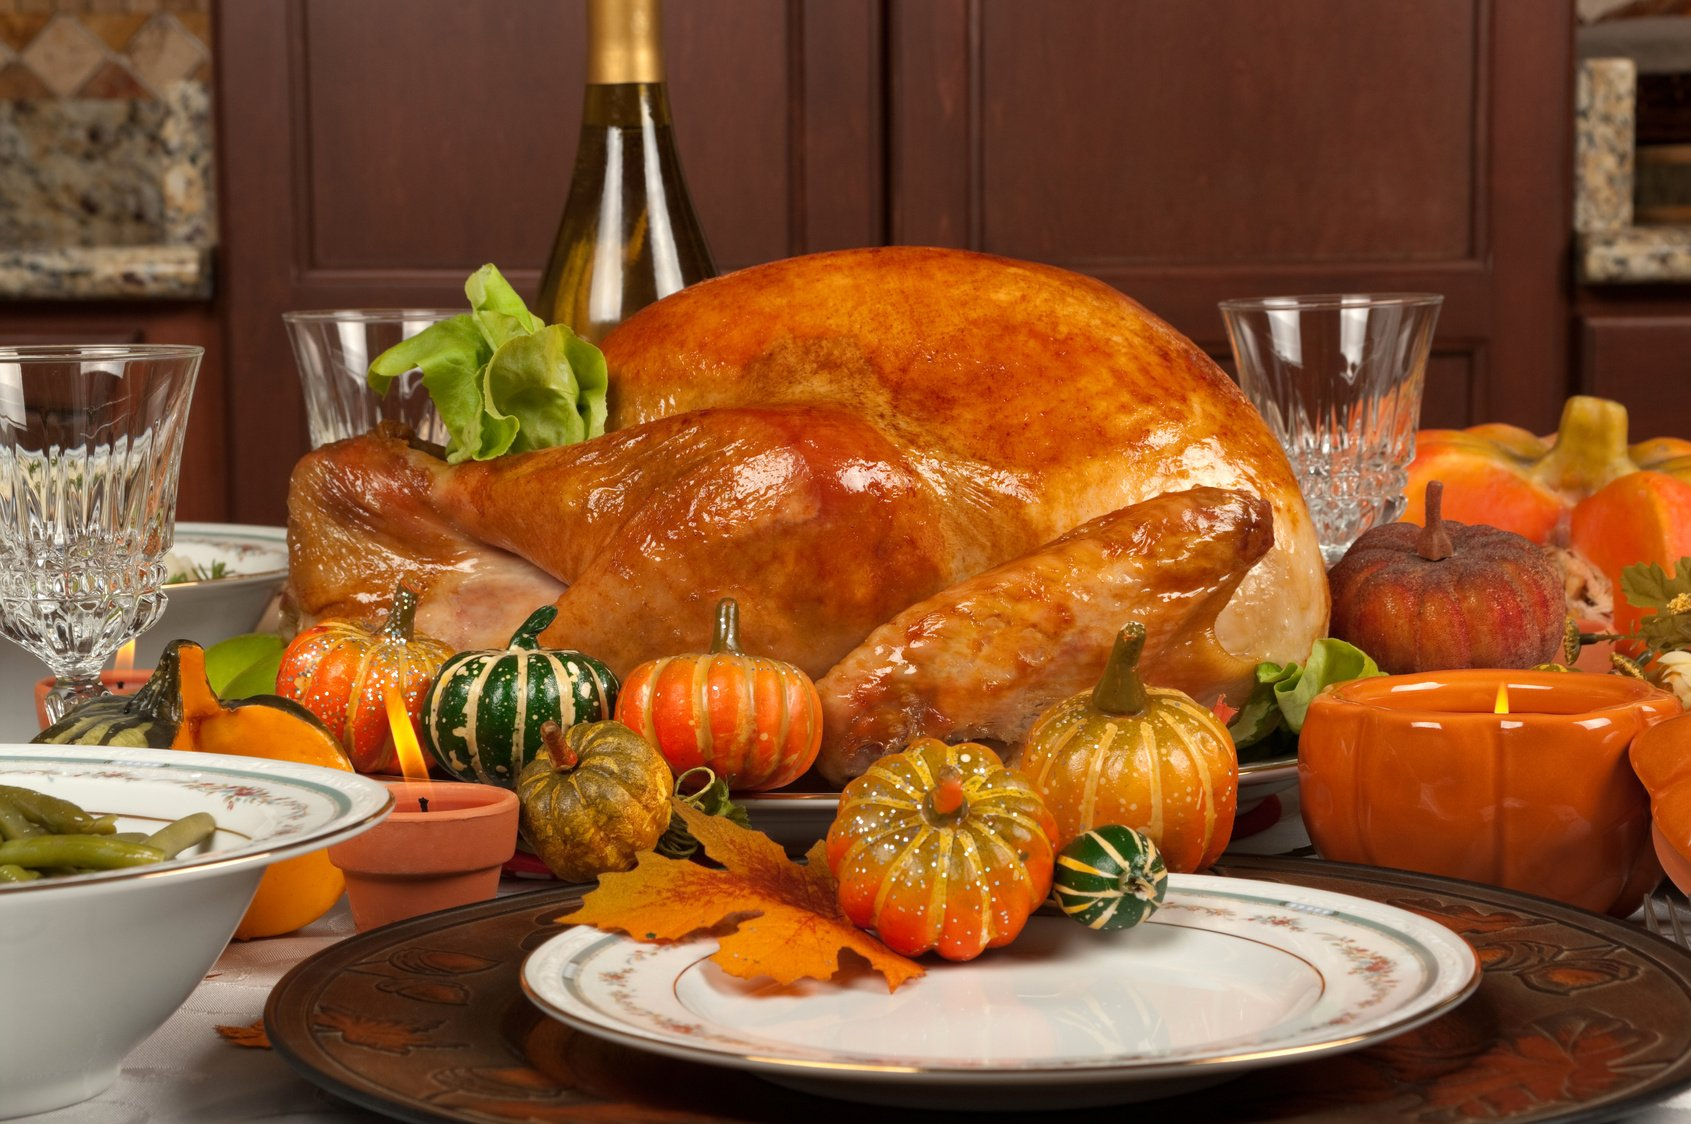 Safety Tips for Preparing Thanksgiving Dinner